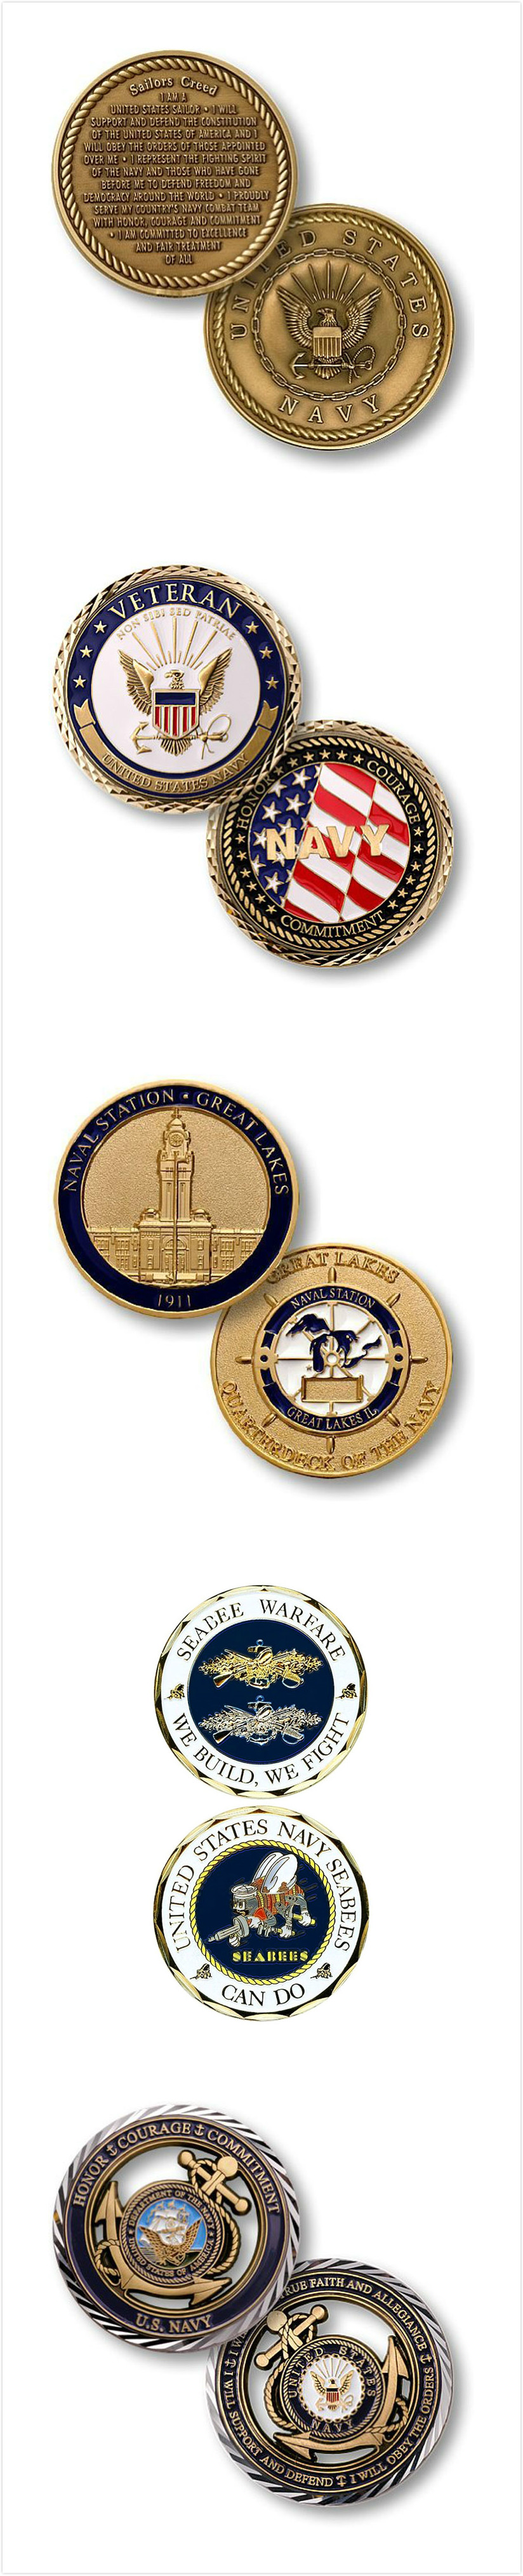 Sailors Creed Coins